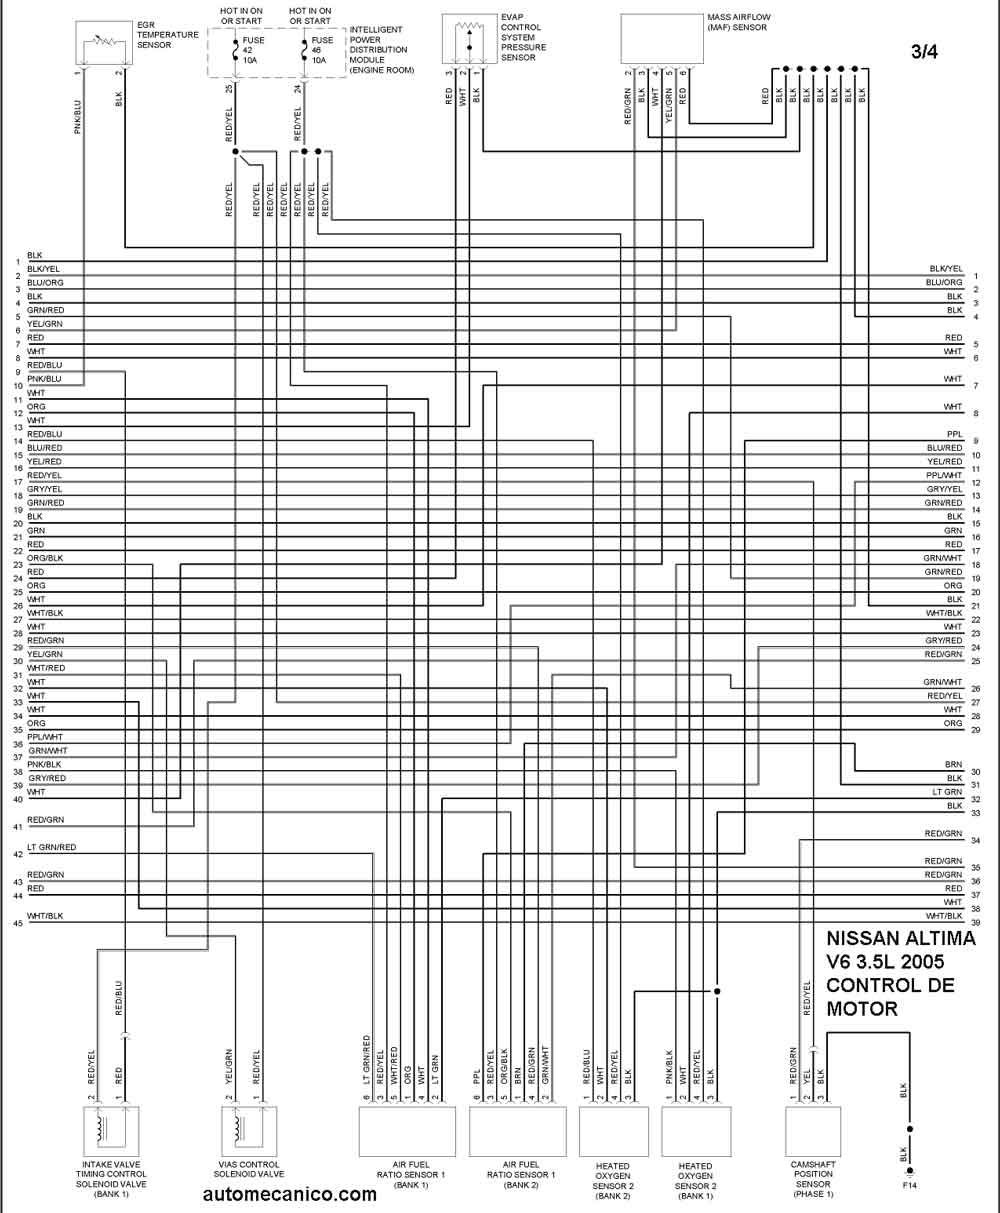 Nissan Pathfinder Engine  partment Diagram moreover Nissan05001 together with 1f985 2005 Nissan Altima Power Window Power Door Locks I Bad Switch further 2011 Nissan Altima Fuse Box Diagram Vehiclepad 2006 Nissan Intended For 2009 Nissan Altima Fuse Box furthermore 7hch4 Nissan Murano Awd 2007 Nissan Murano Awd Separate. on 2006 nissan altima